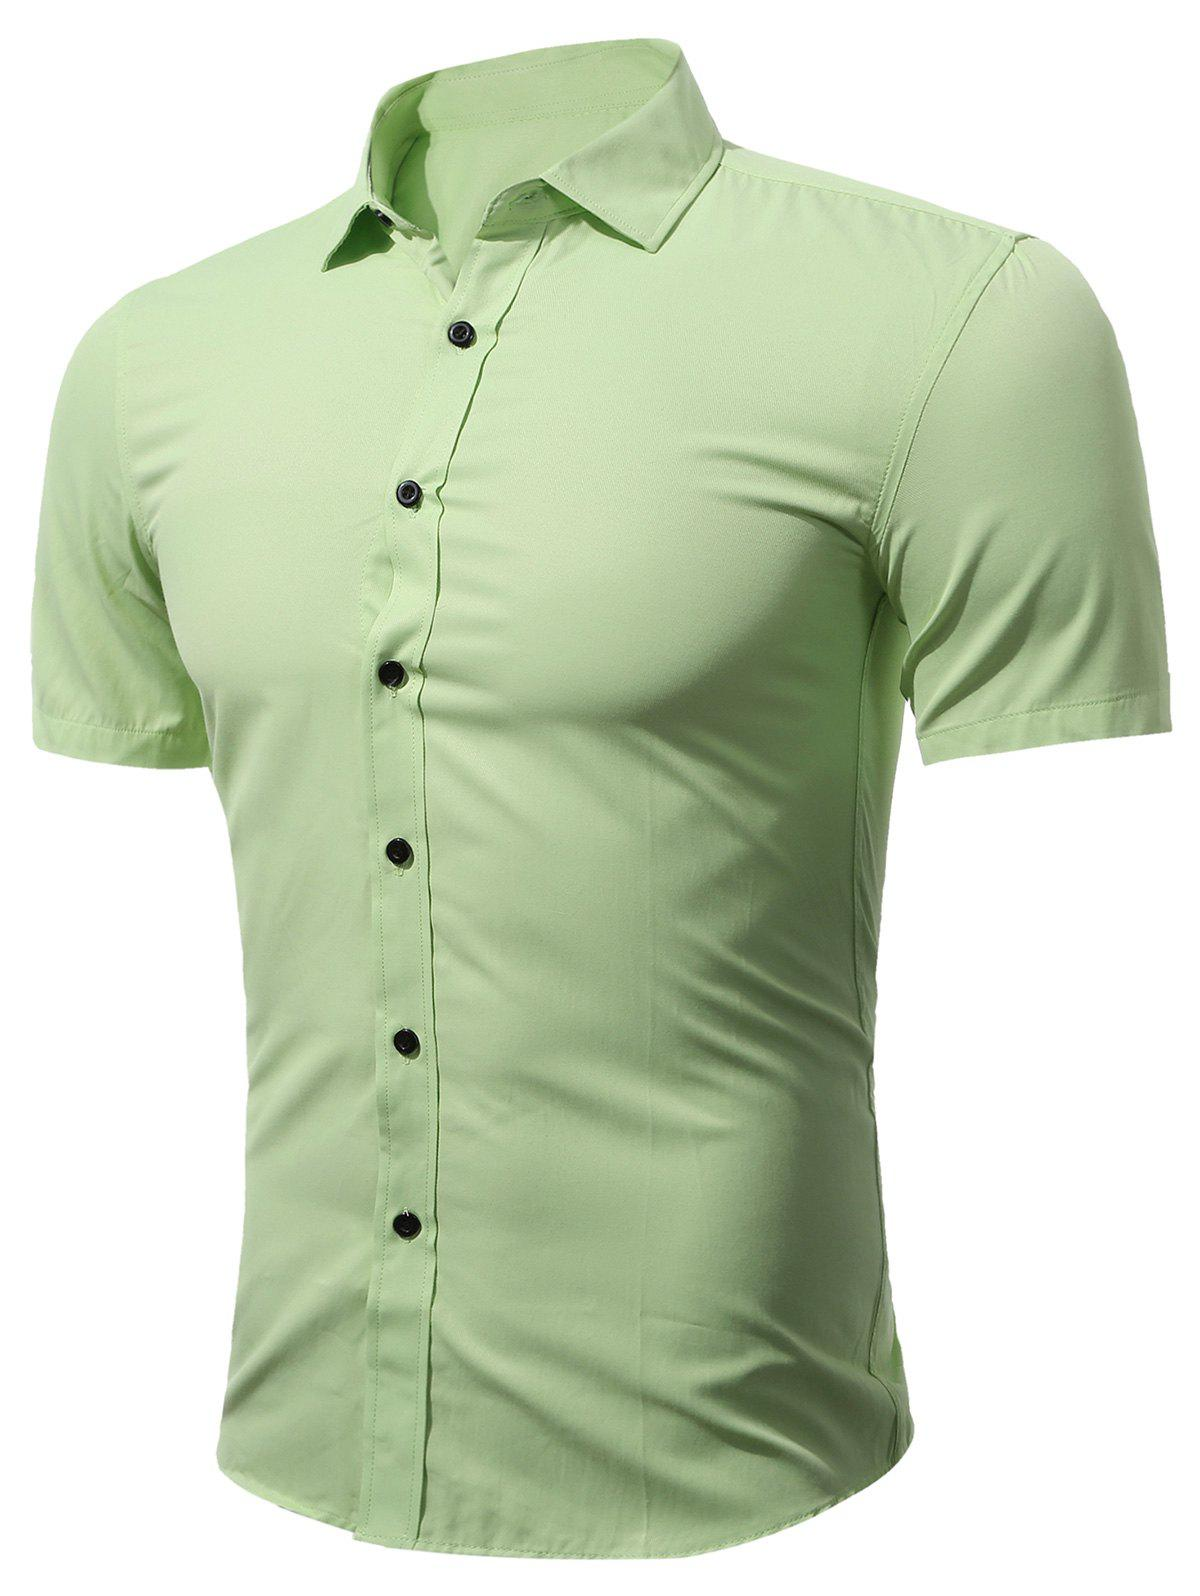 Short Sleeve Business Shirt in Slim Fit - GREEN 2XL